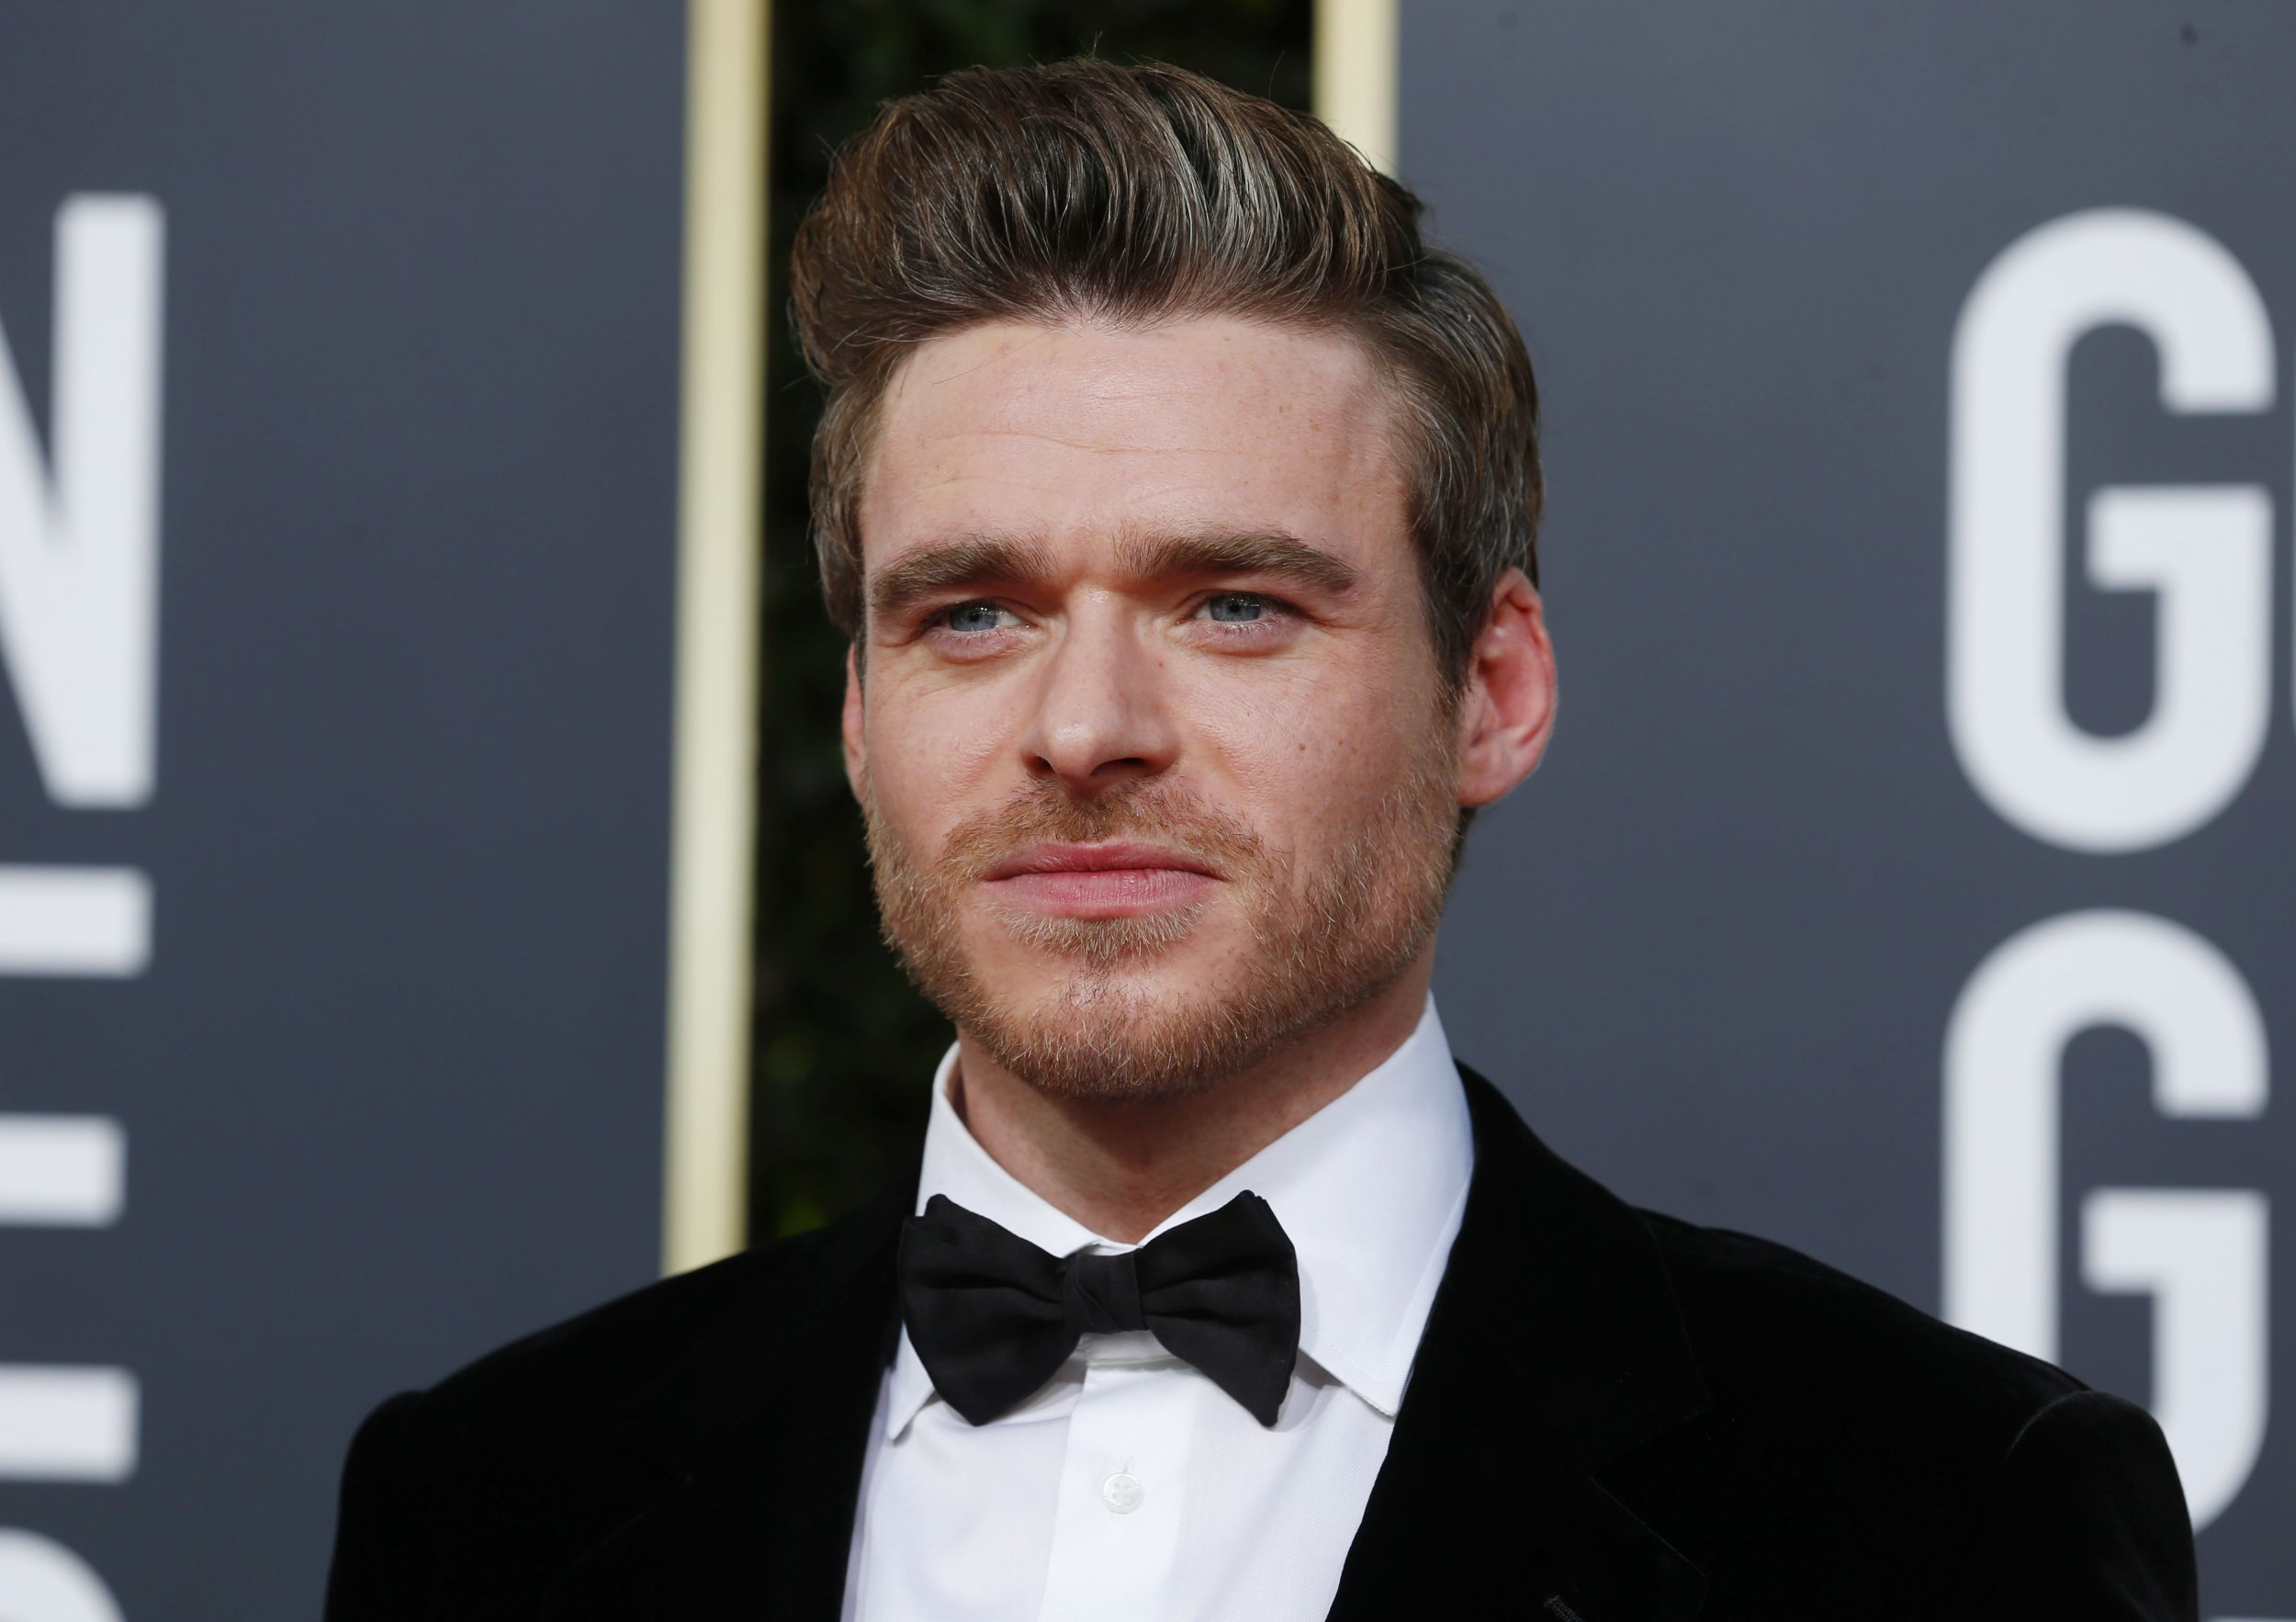 76th Golden Globe Awards - Arrivals - Beverly Hills, California, U.S., January 6, 2019 - Richard Madden. REUTERS/Mike Blake